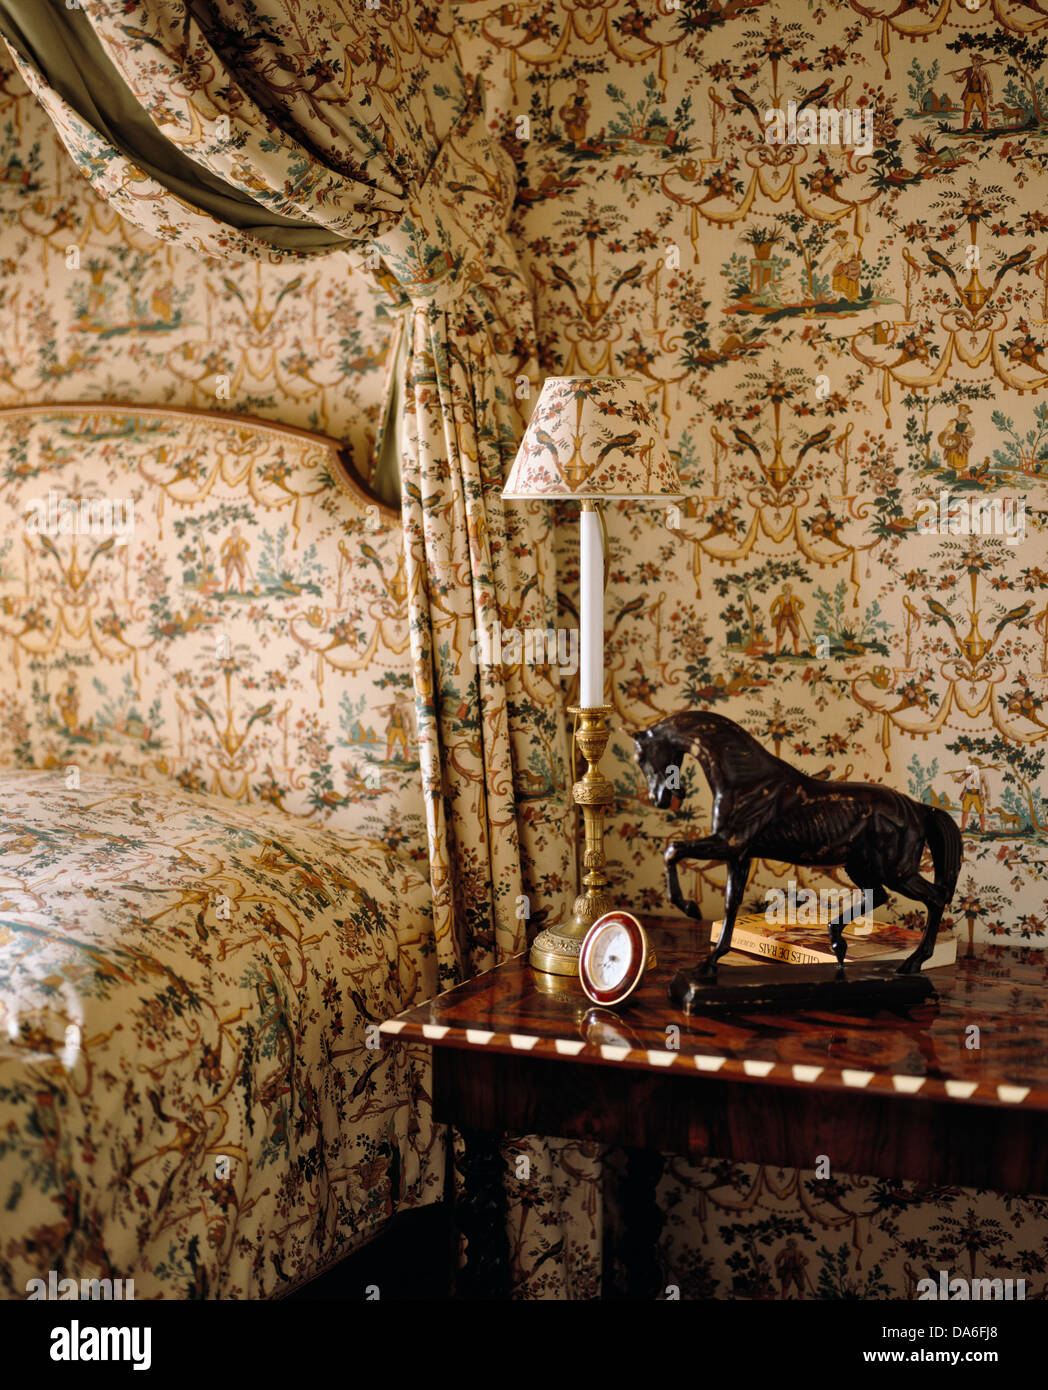 Coordinating wallpaper and bed drapes and headboard in country bedroom with small lamp and statue of horse on antique - Stock Image